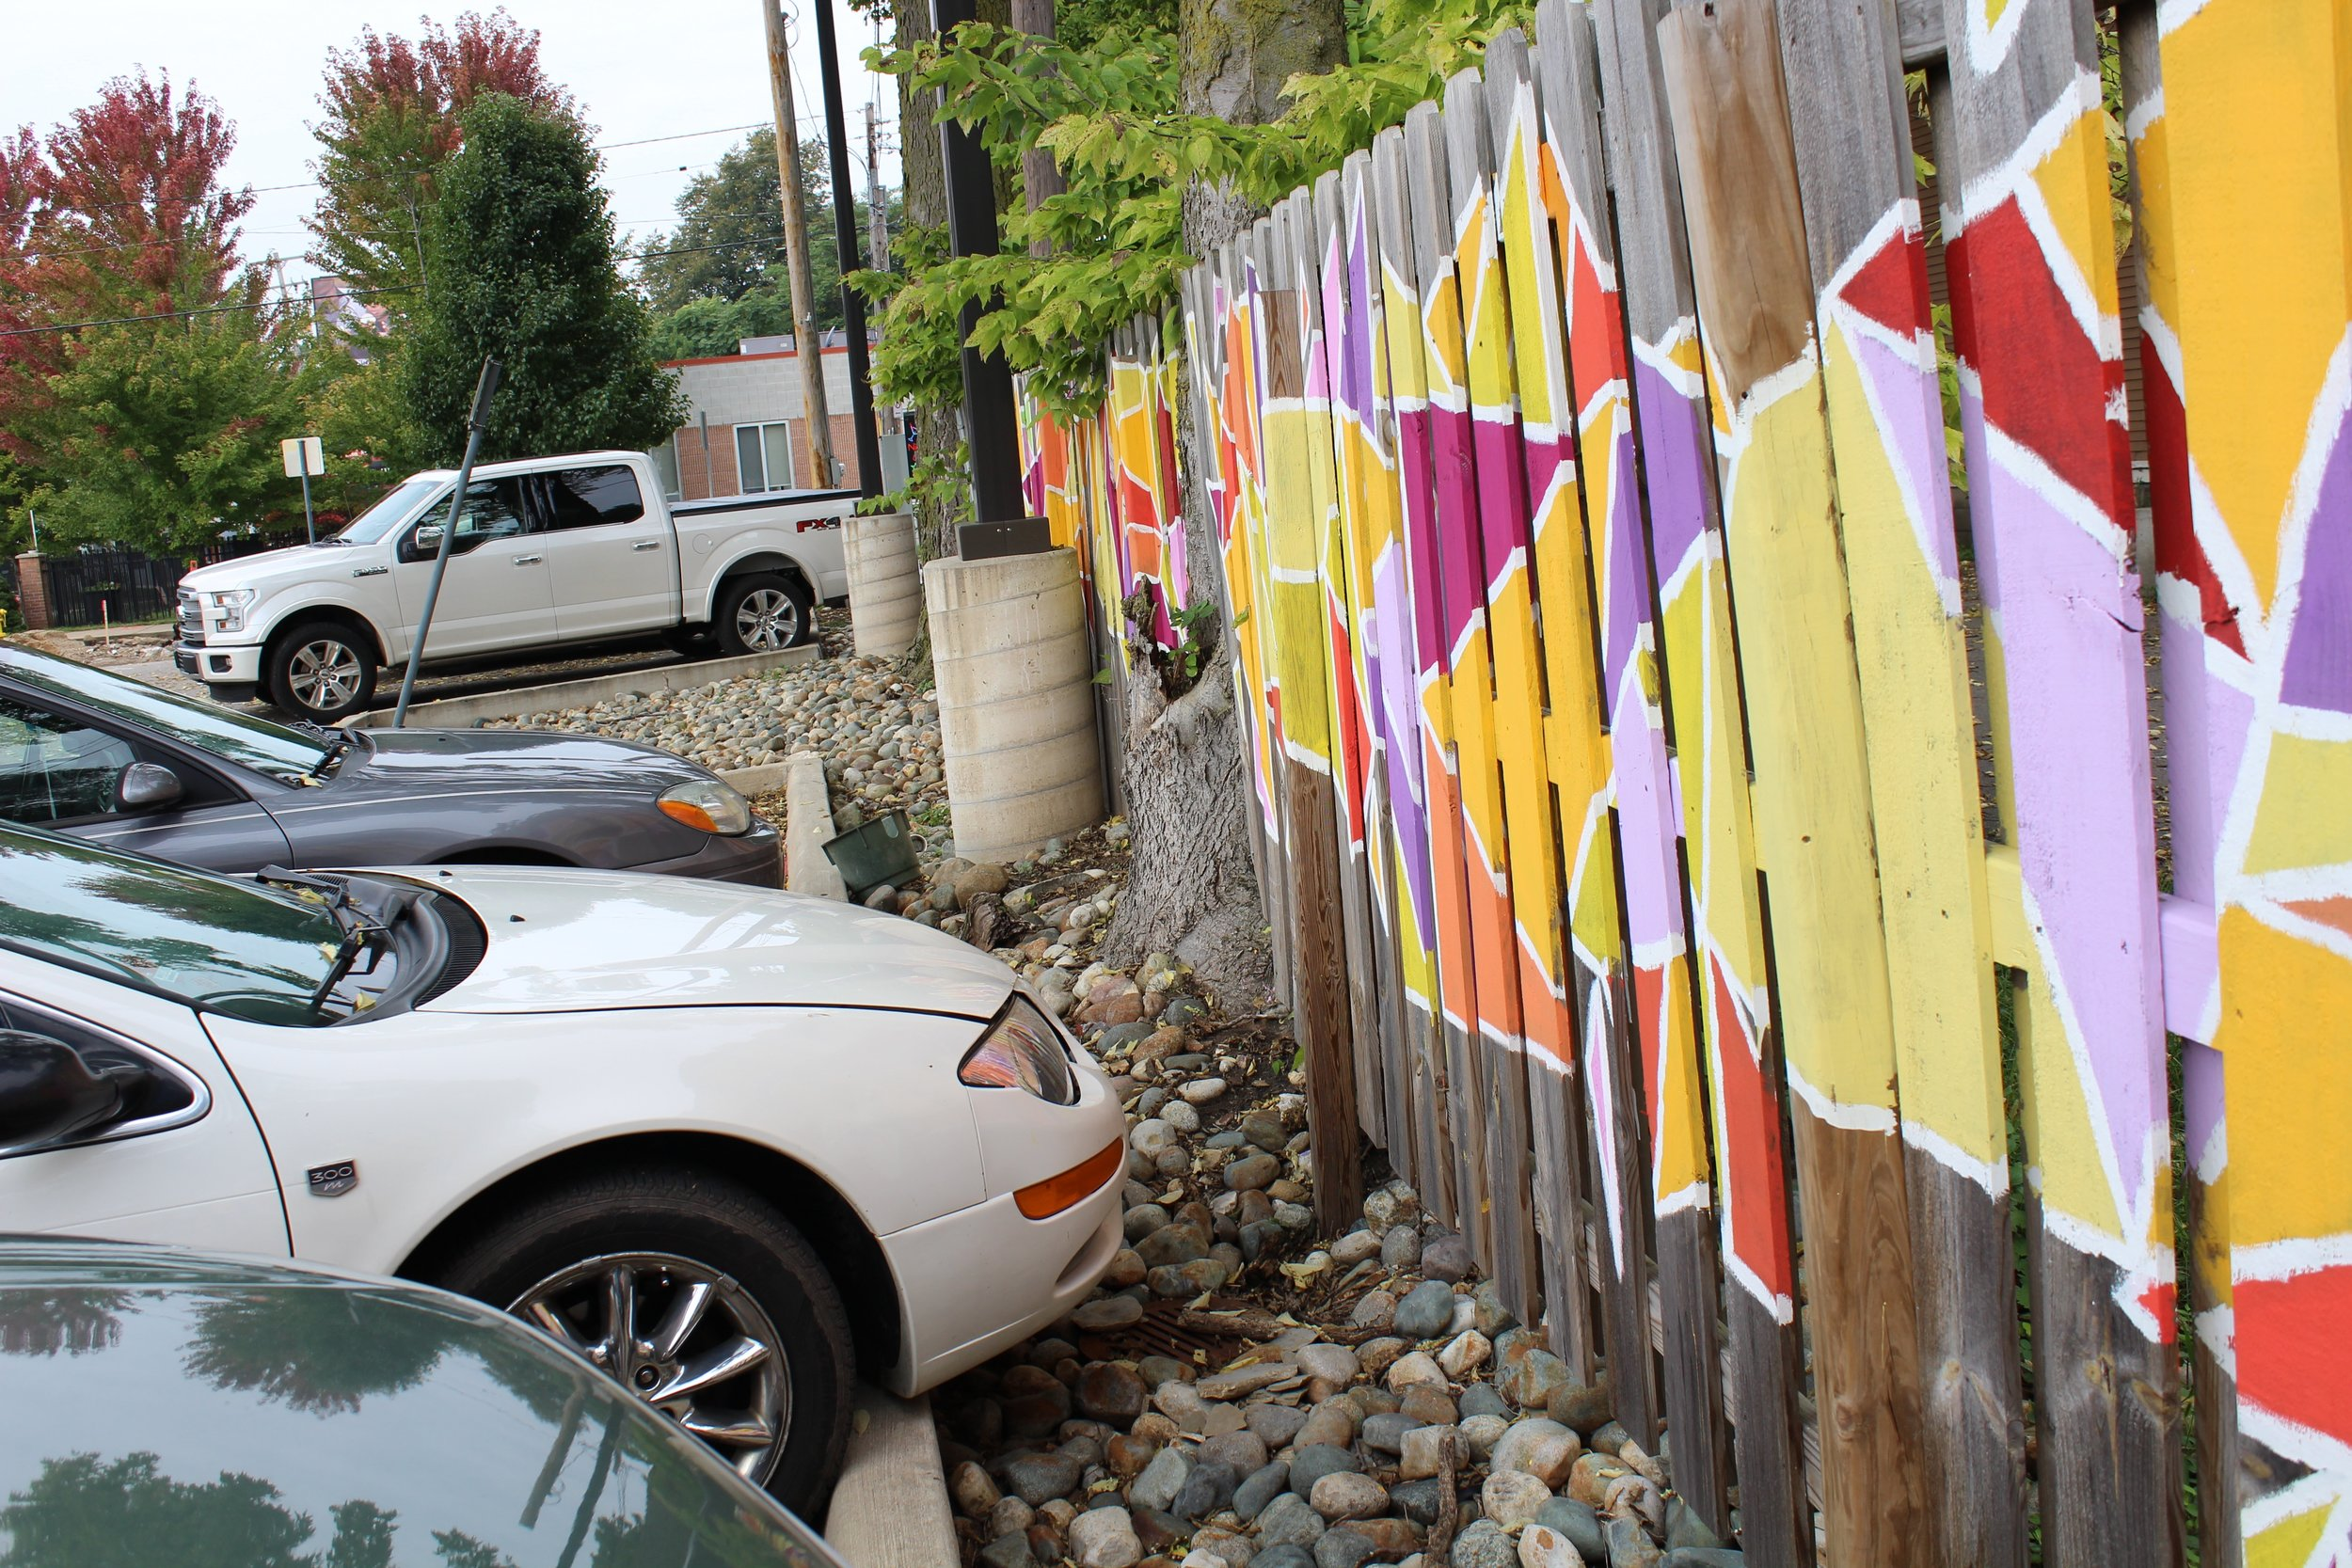 Geometric abstract mural on pavement and fence of Fulton St. parking lot